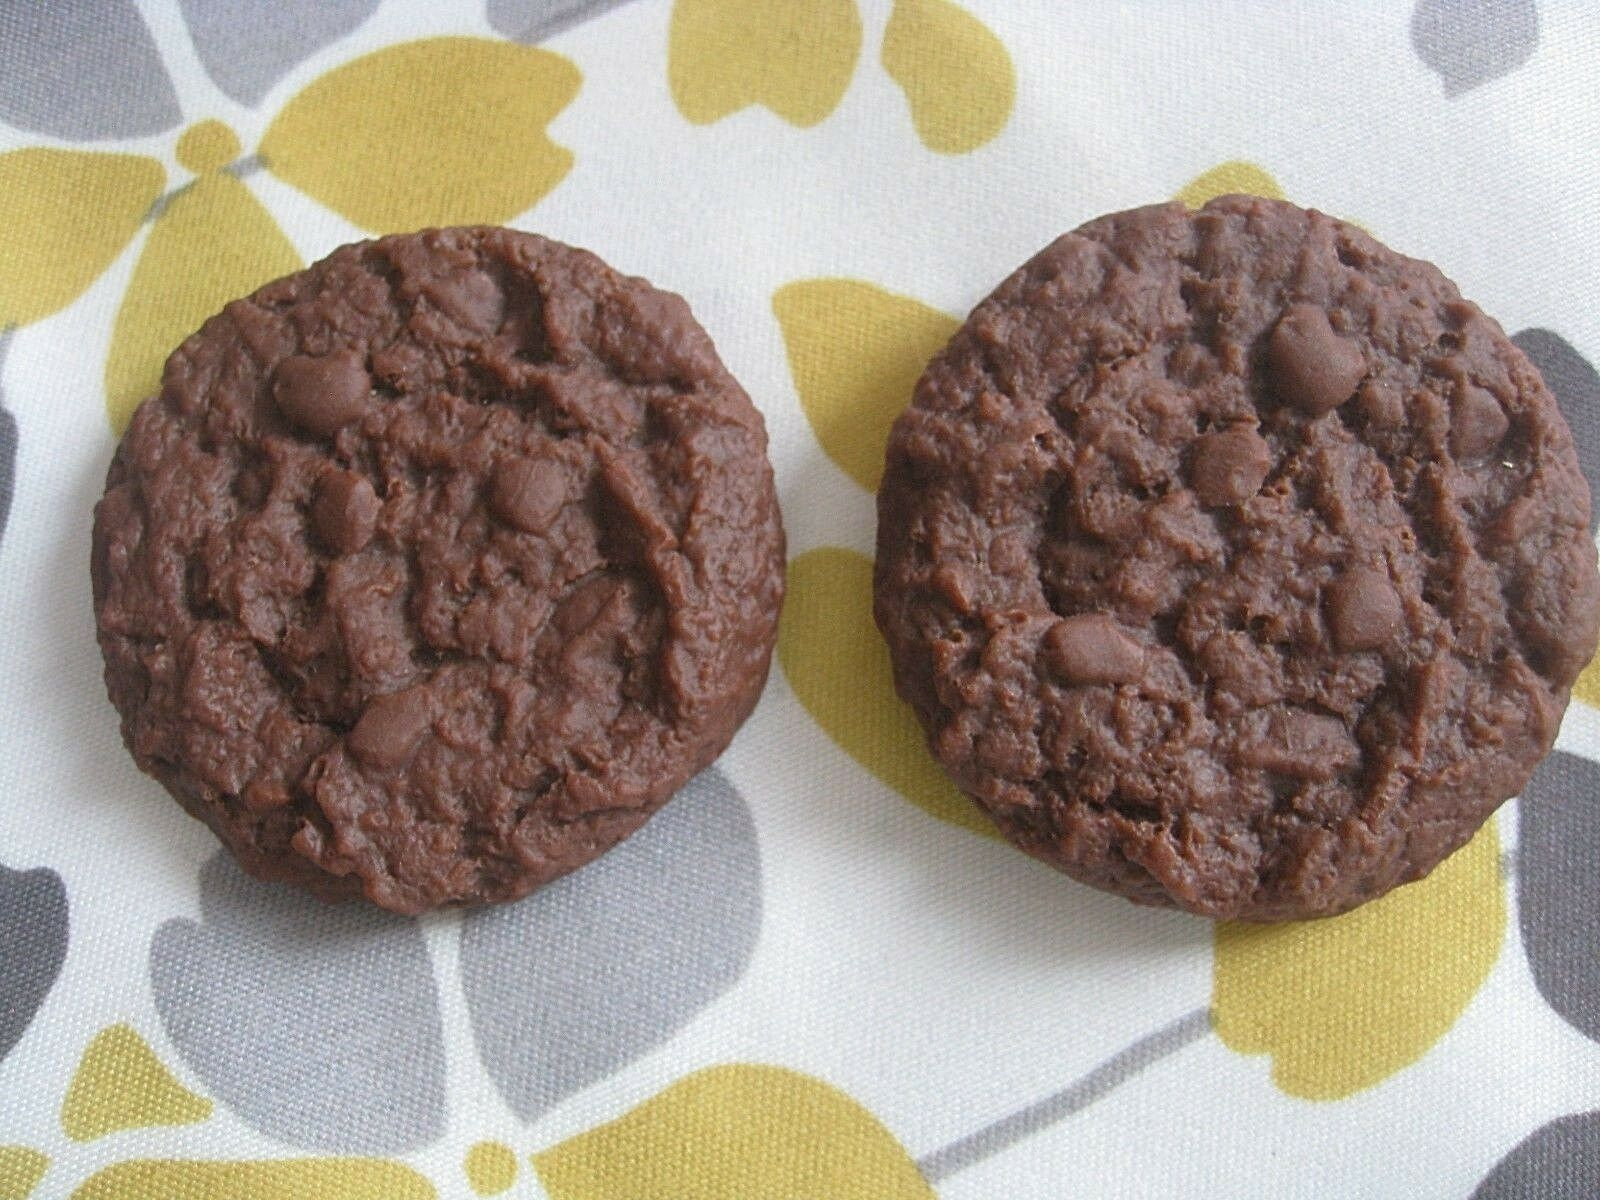 REALISTIC FAKE FAUX FUN FOOD PROP ● 2 DETAILED CHOCOLATE COOKIES 1987 MTC  EXC